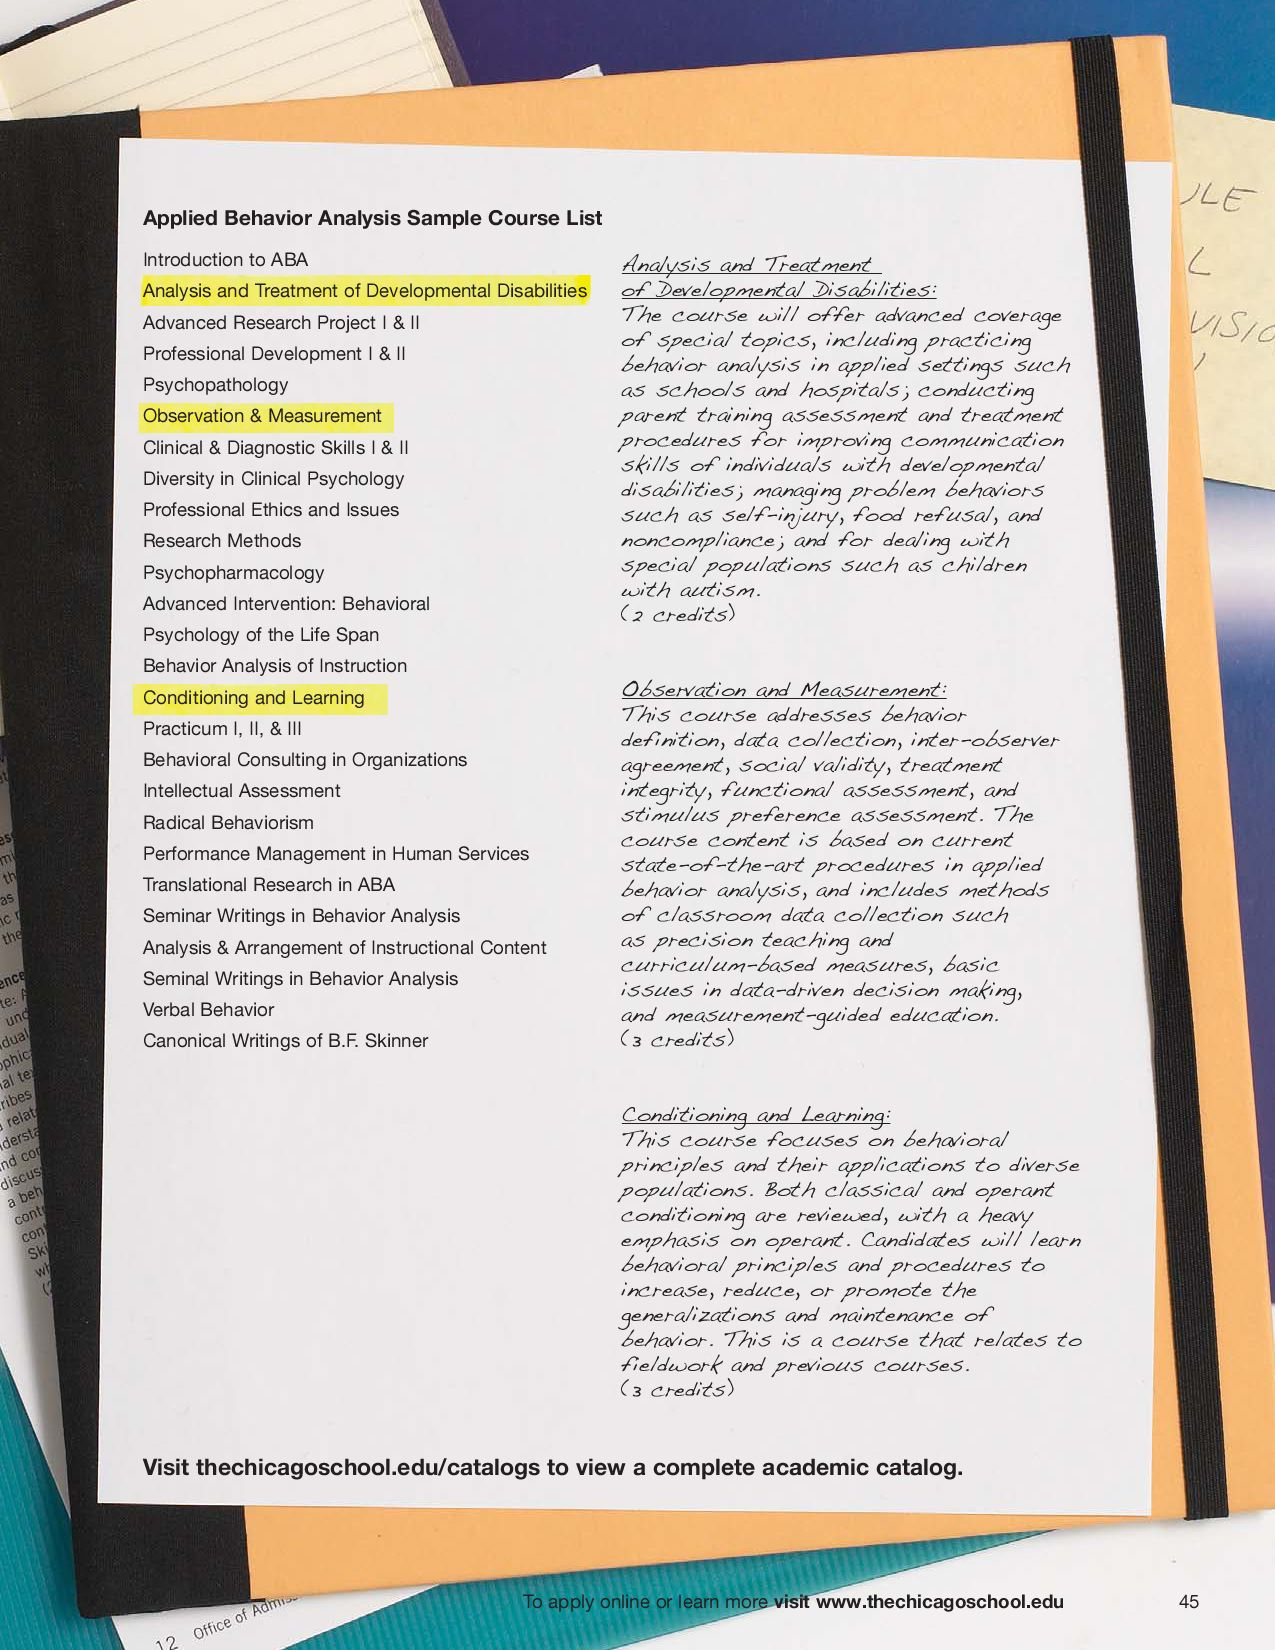 Prospectus by The Chicago School of Professional Psychology - issuu